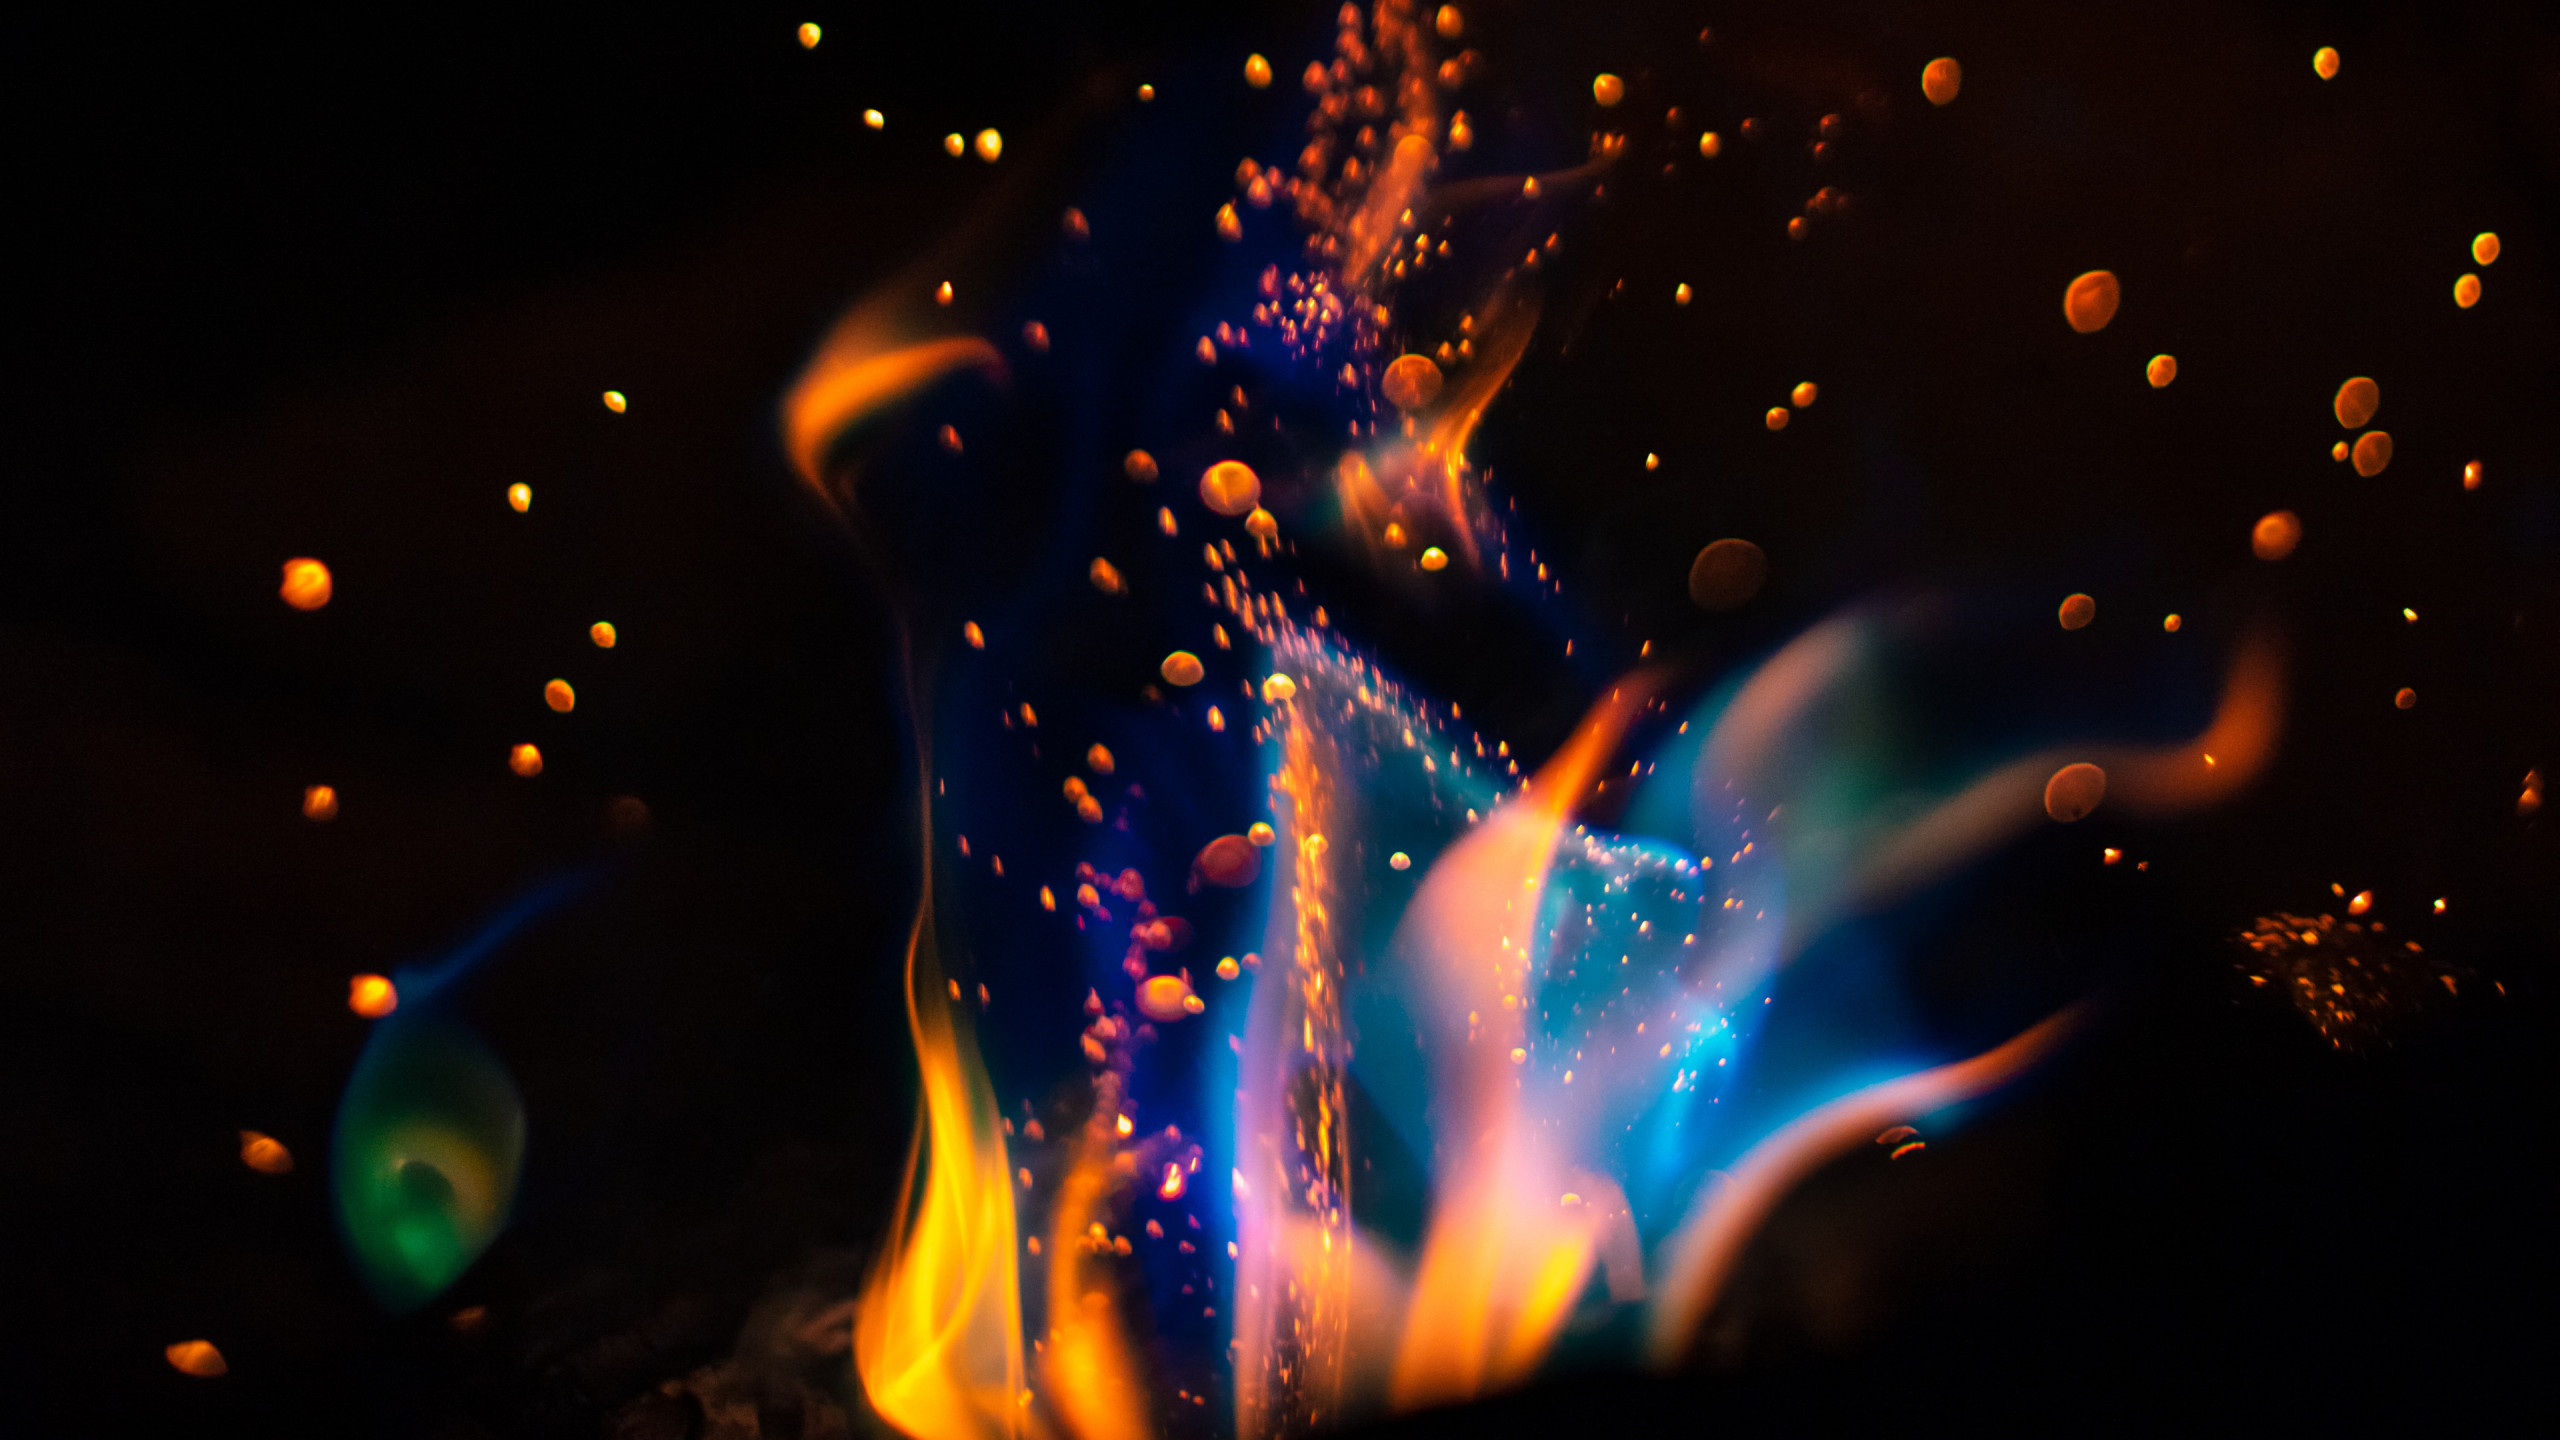 Hot flames in darkness wallpaper 2560x1440